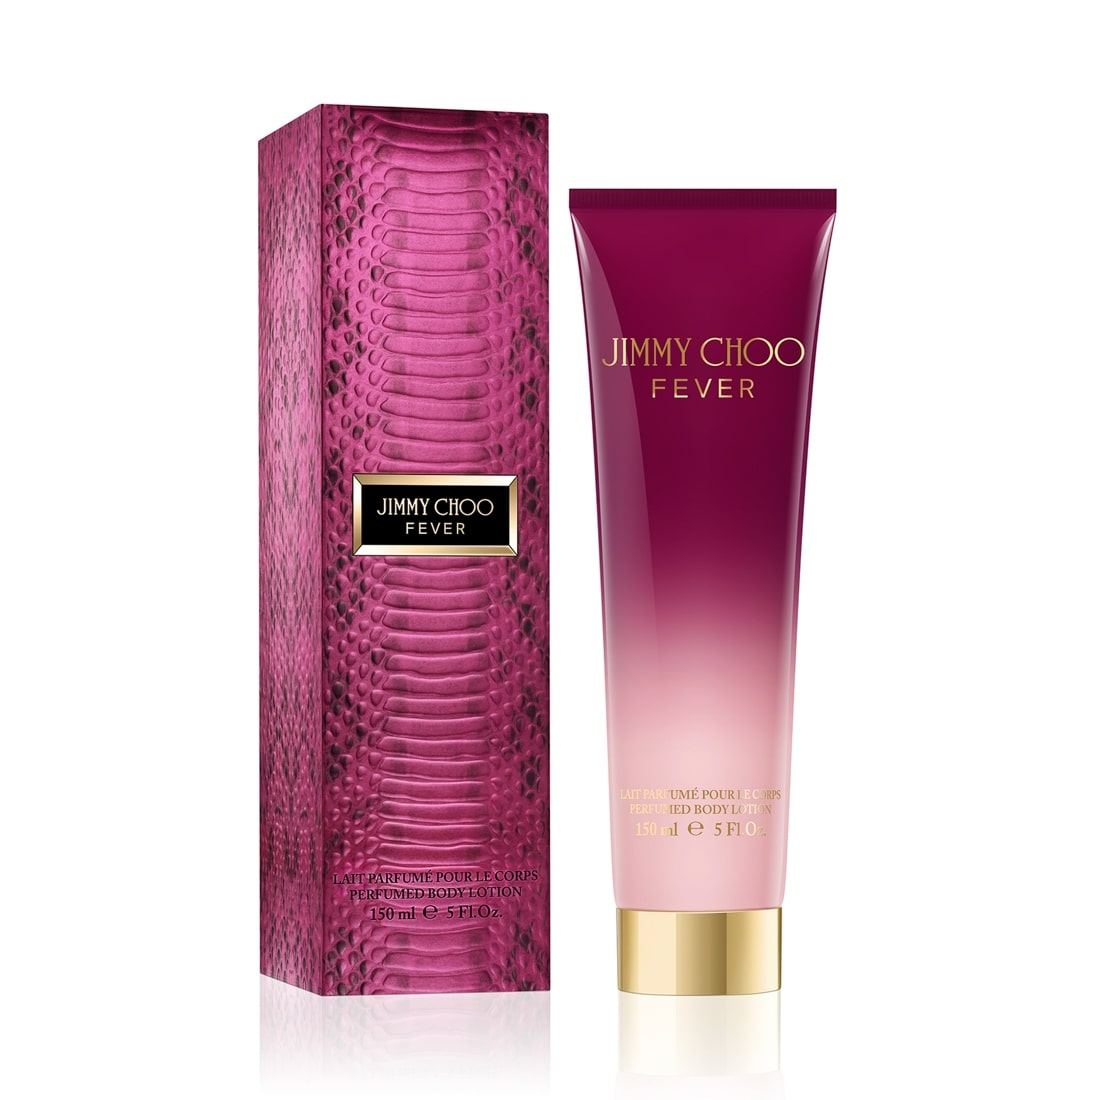 Jimmy Choo Fever Eau de Parfum Body Lotion 150ml